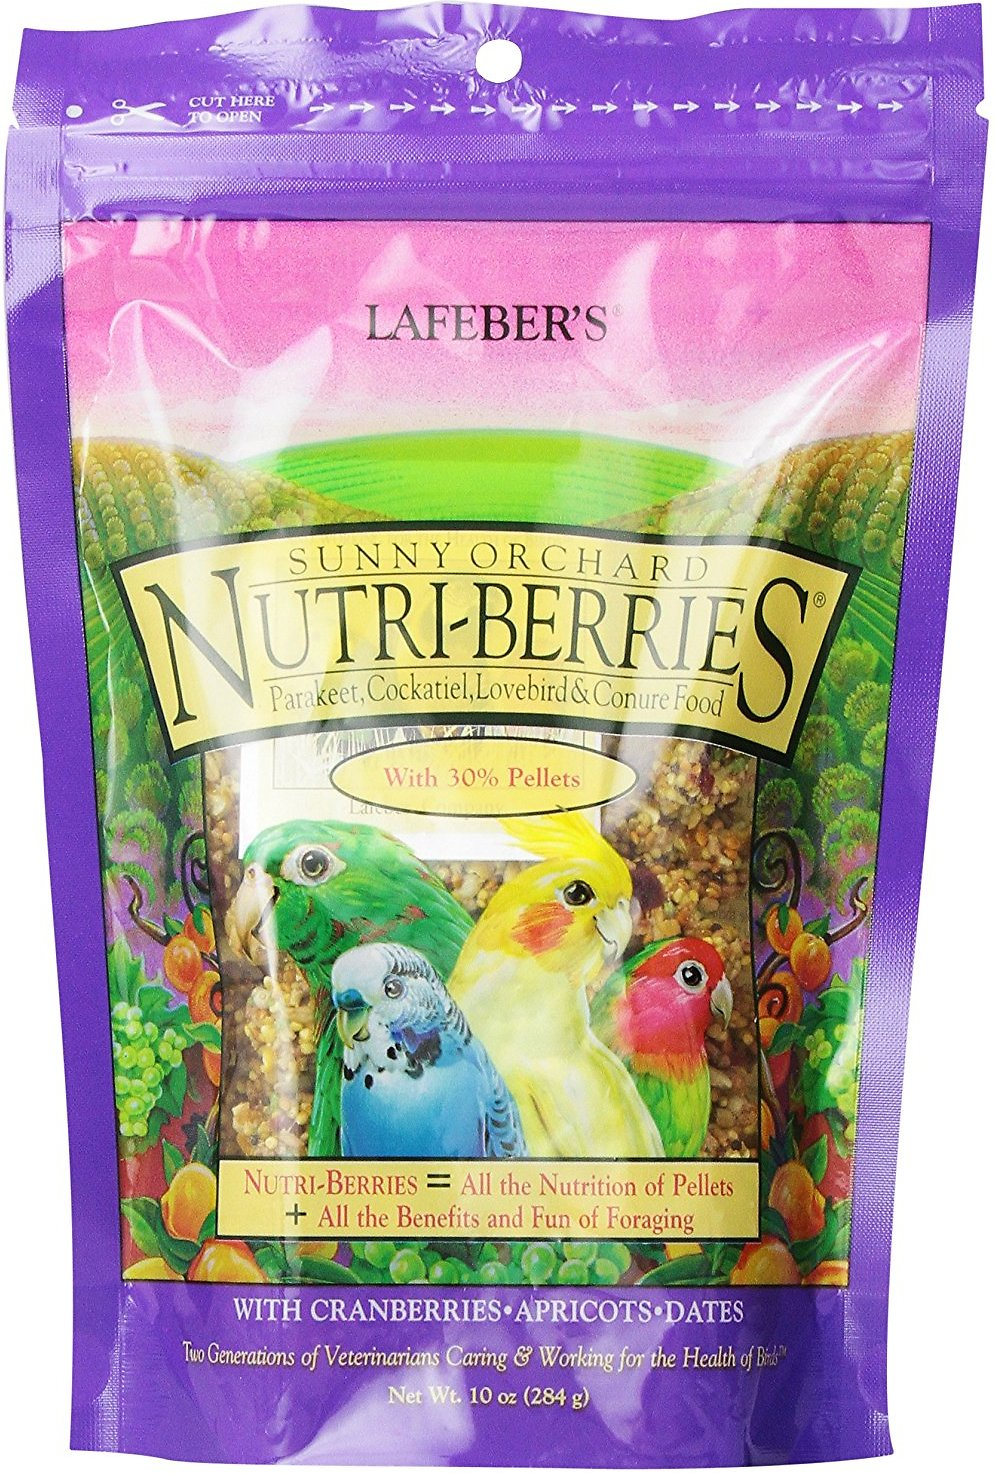 Lafeber Sunny Orchard Nutri-Berries Cockatiel Bird Food, 10-oz bag (Weights: 10 ounces) Image